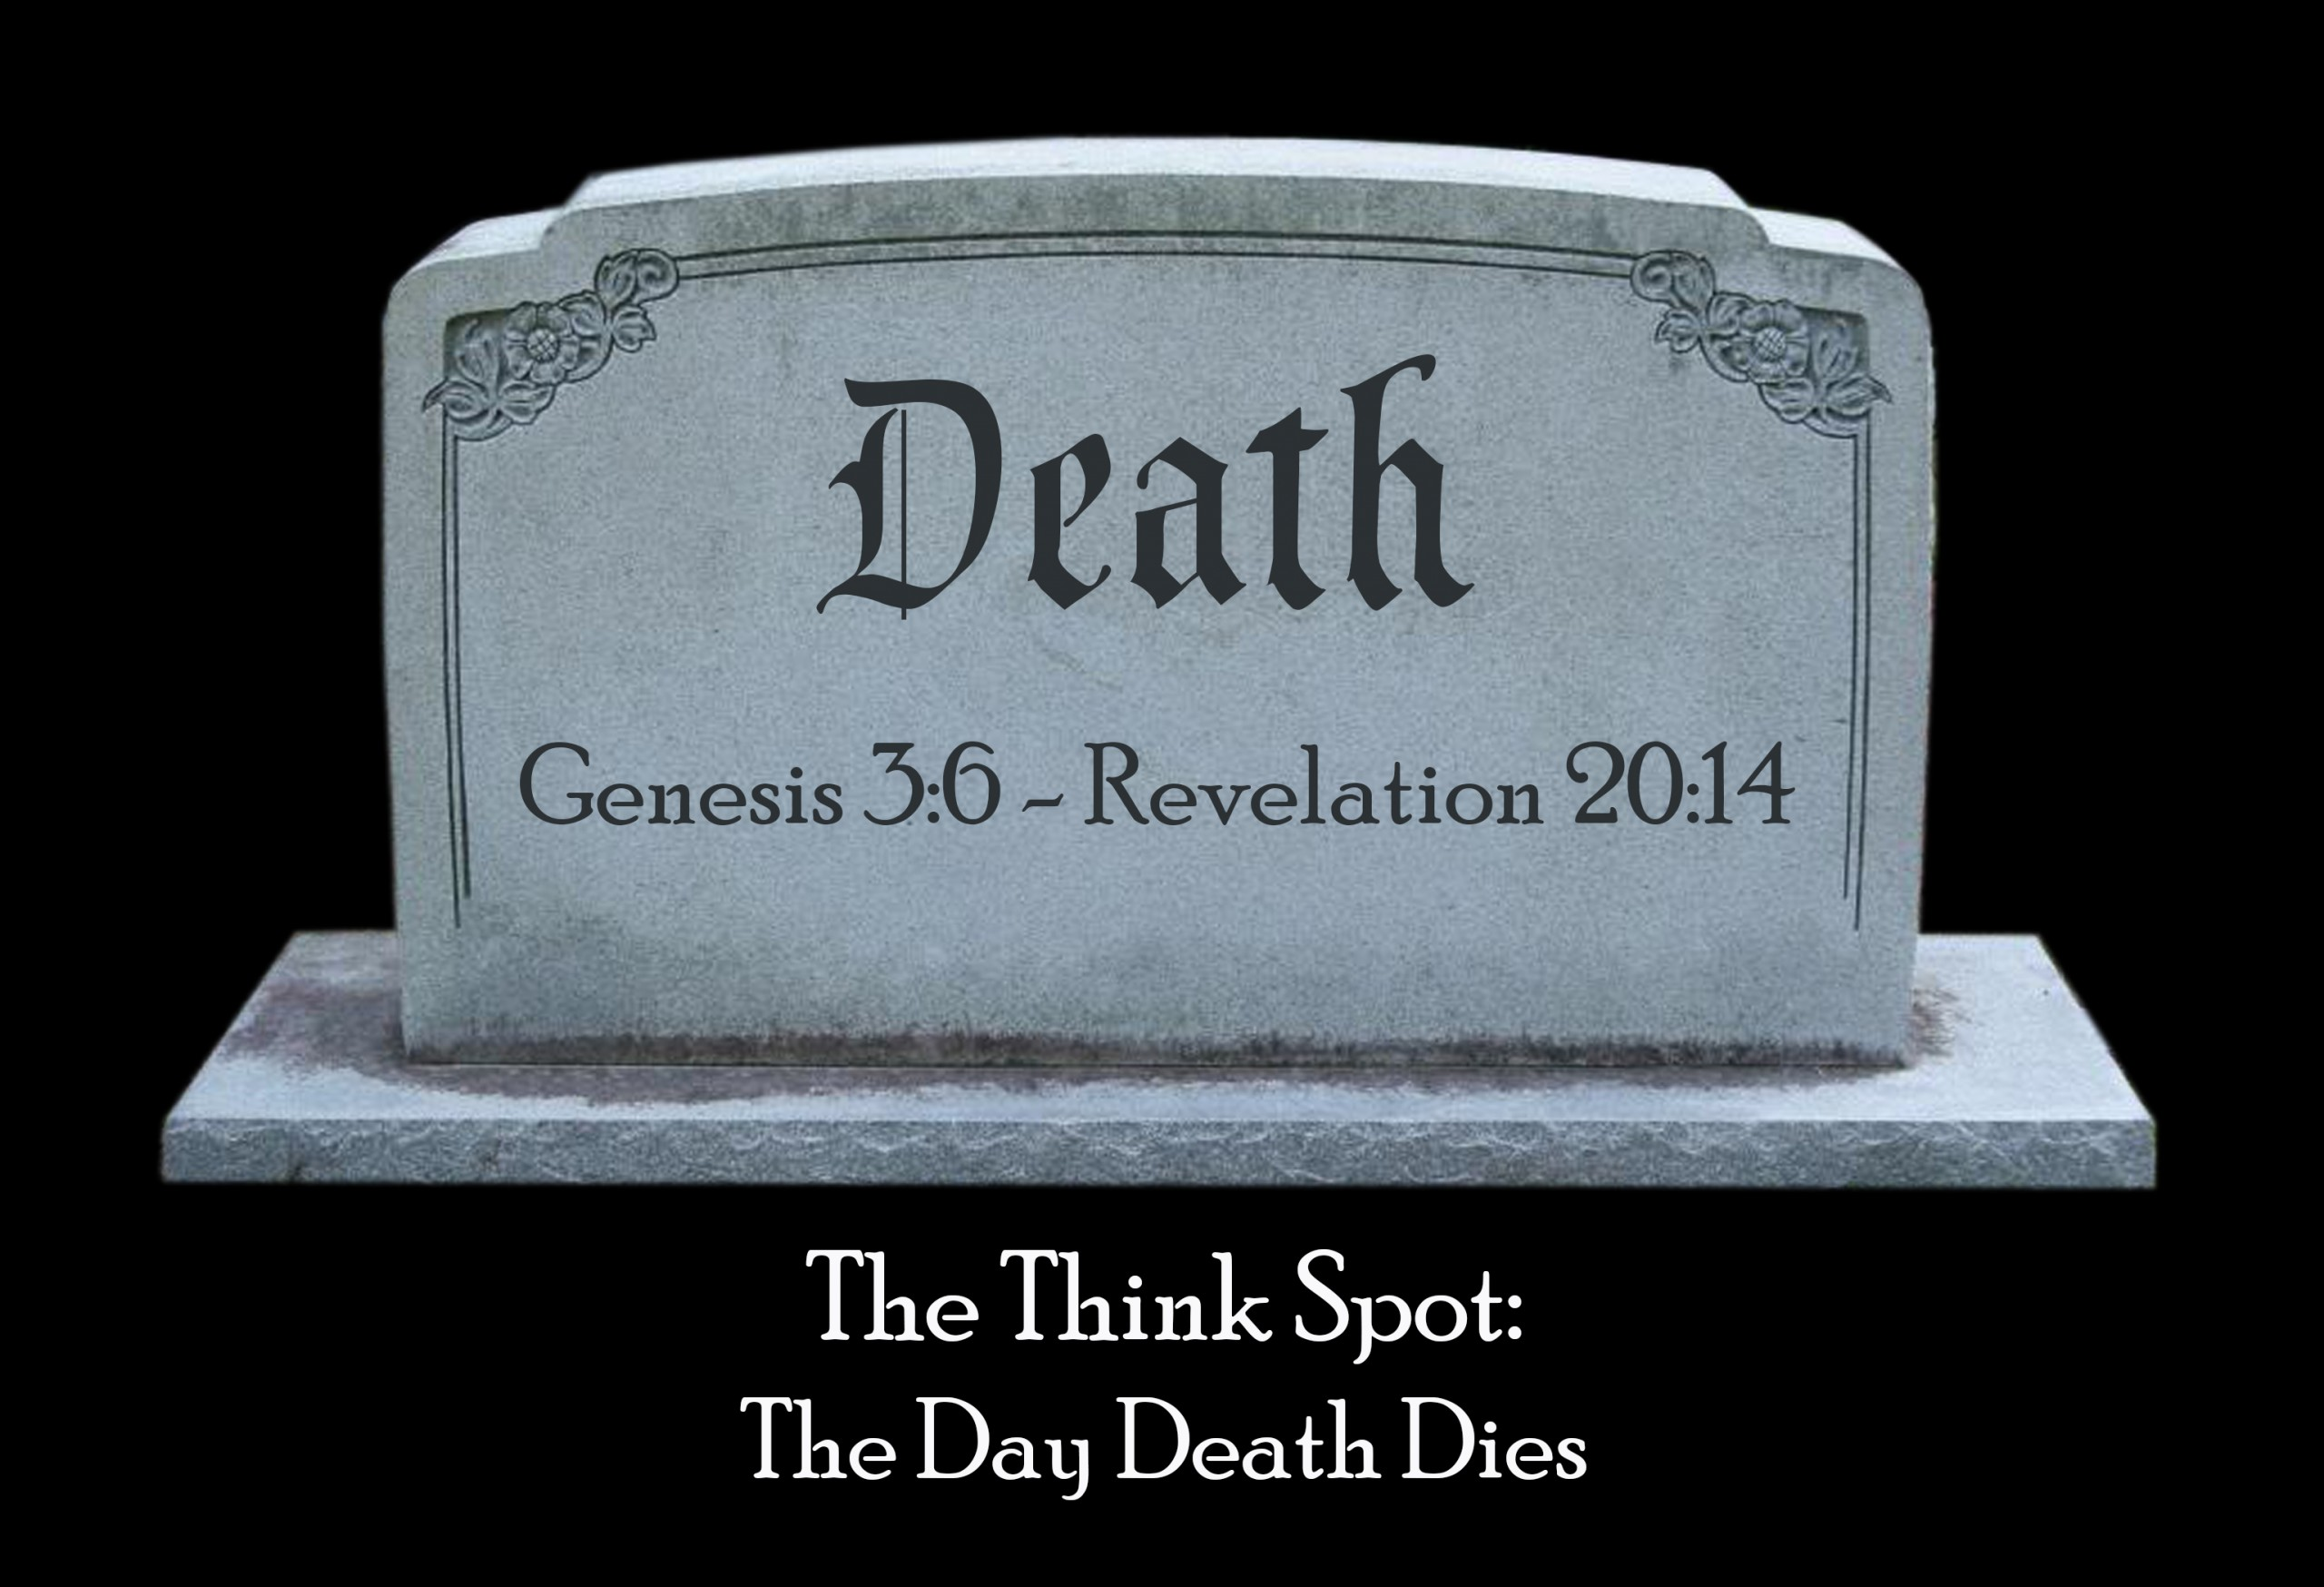 Photo of Death's tombstone by Chip Nuhrah